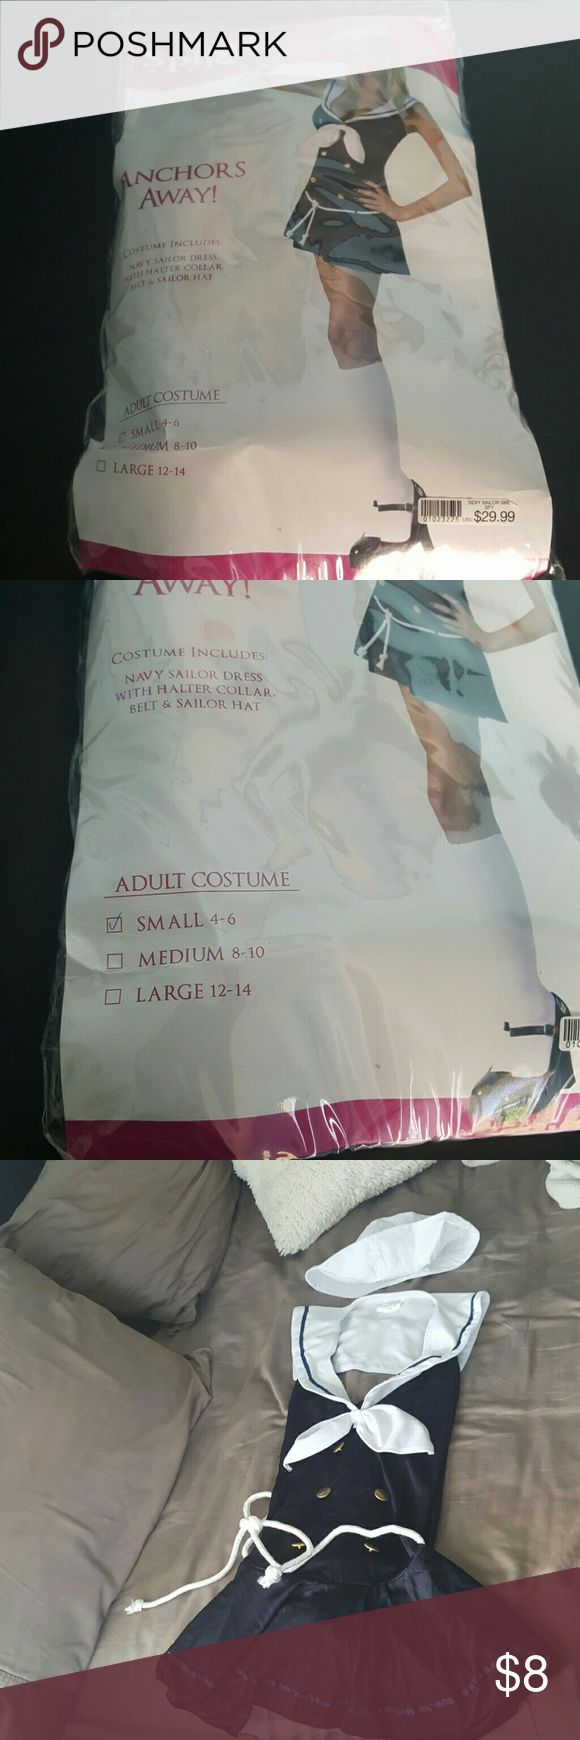 Sailor Halloween costume Never been worn except to try on and has all pieces in the bag spirit Other